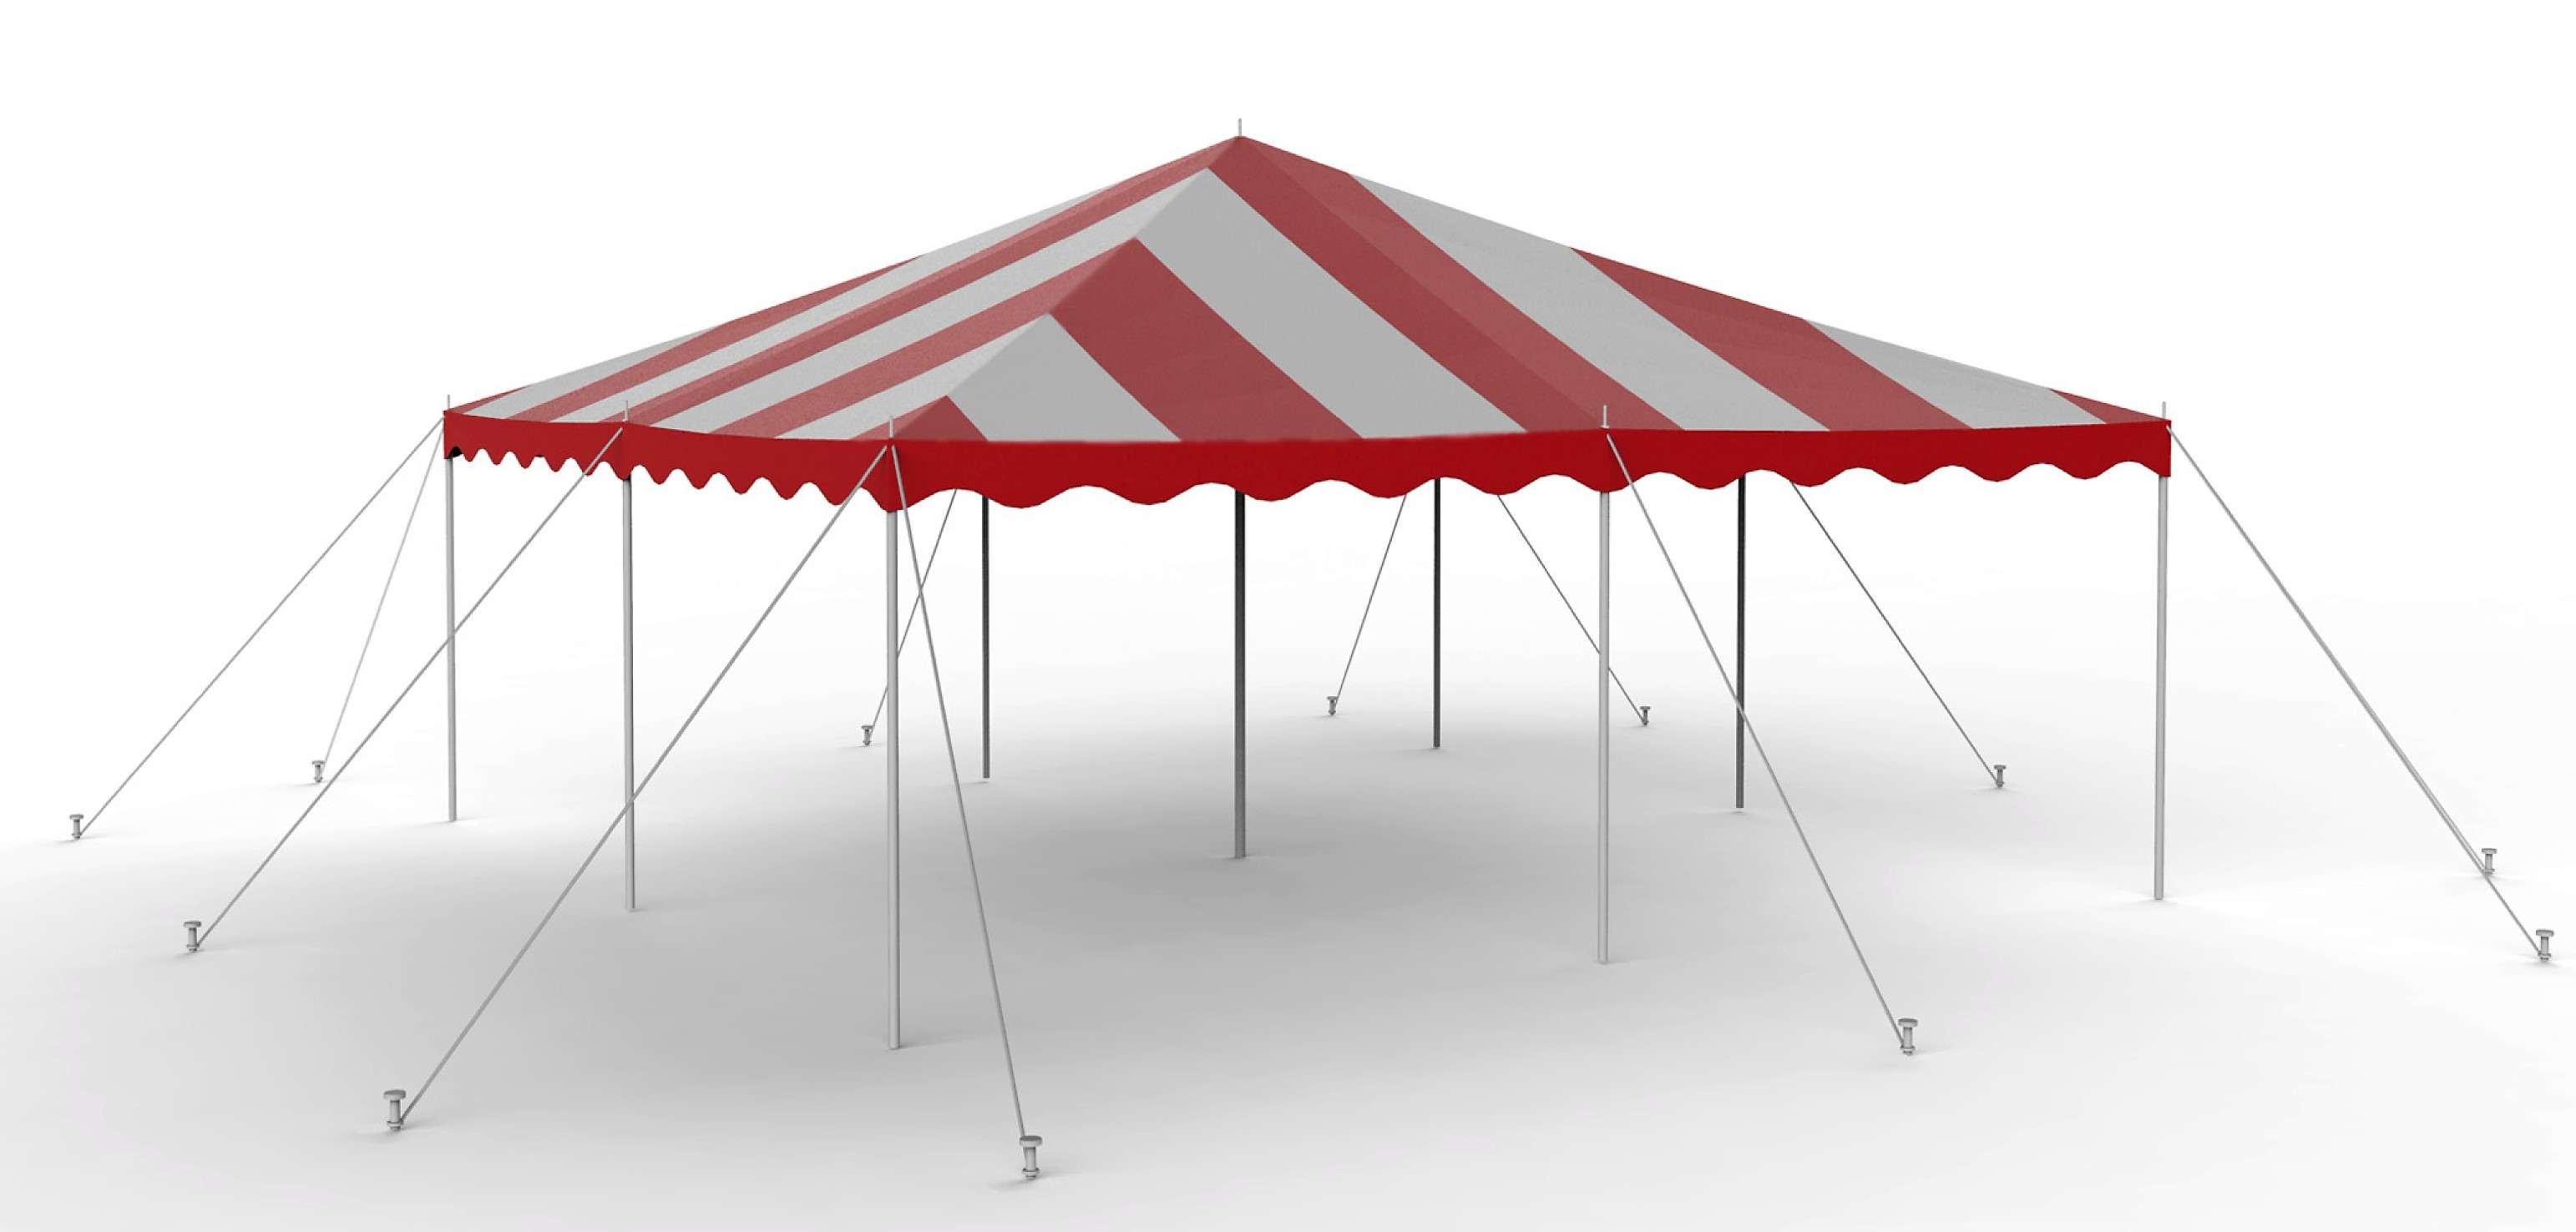 20x20 Red-White Staked Canopy